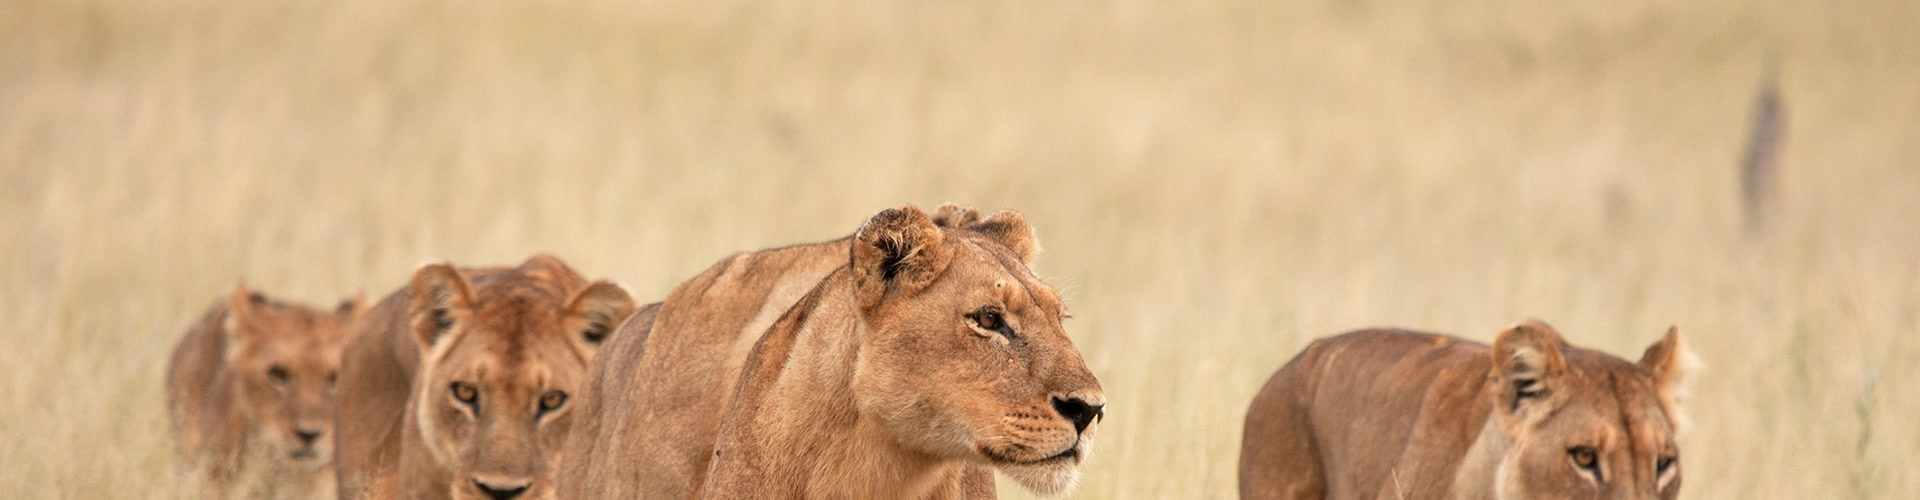 Watch Wild Africa: Lions Vs Buffalo Online